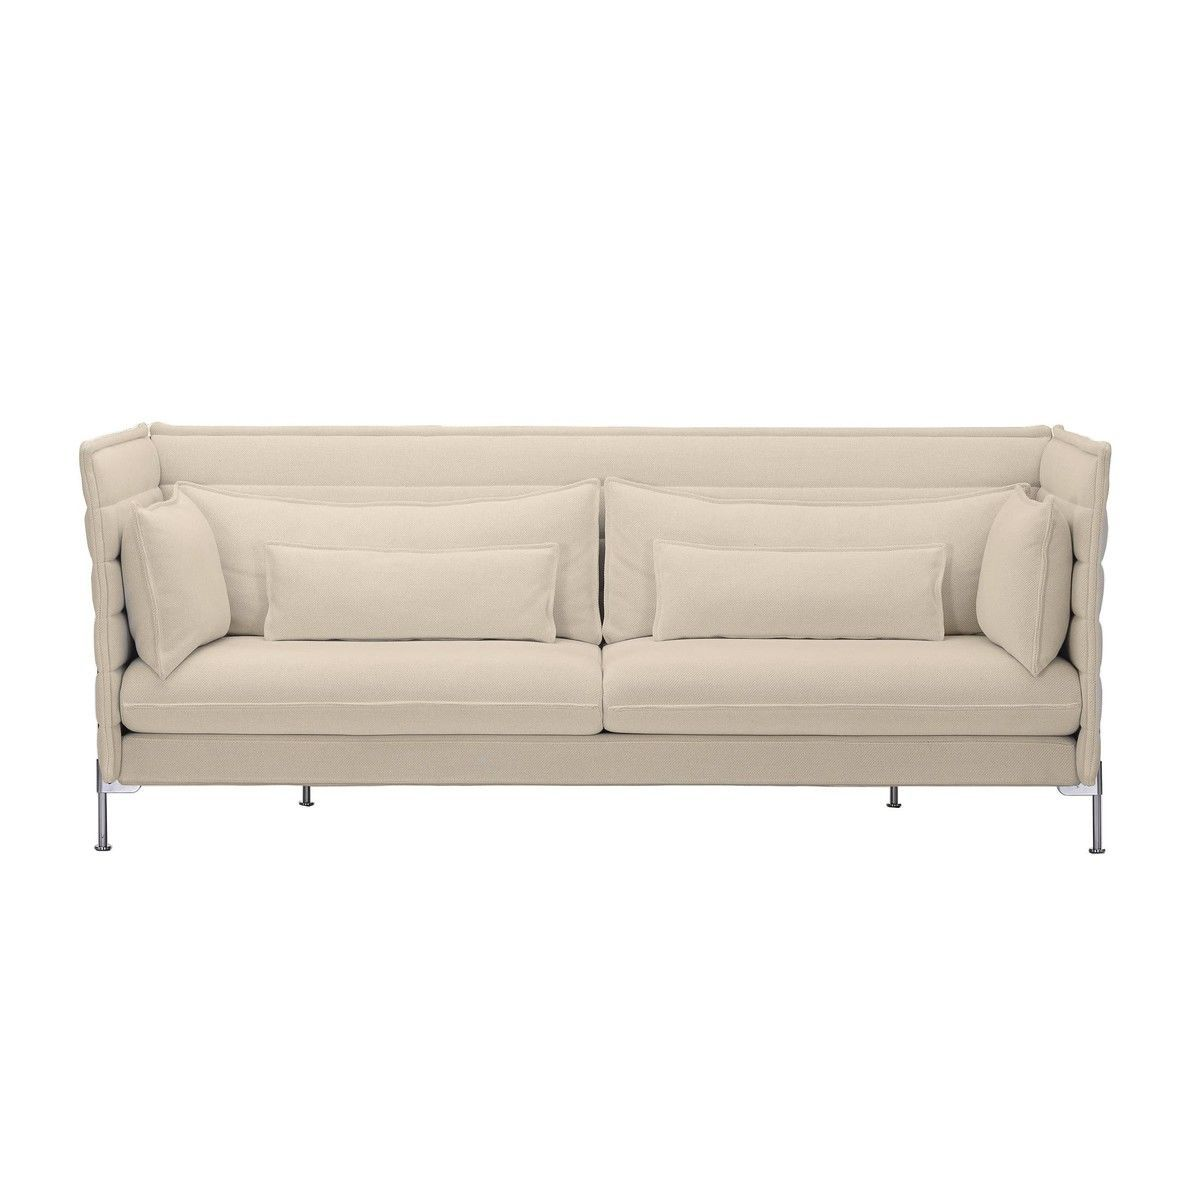 Alcove bouroullec canap 3 places vitra for Soldes vitra